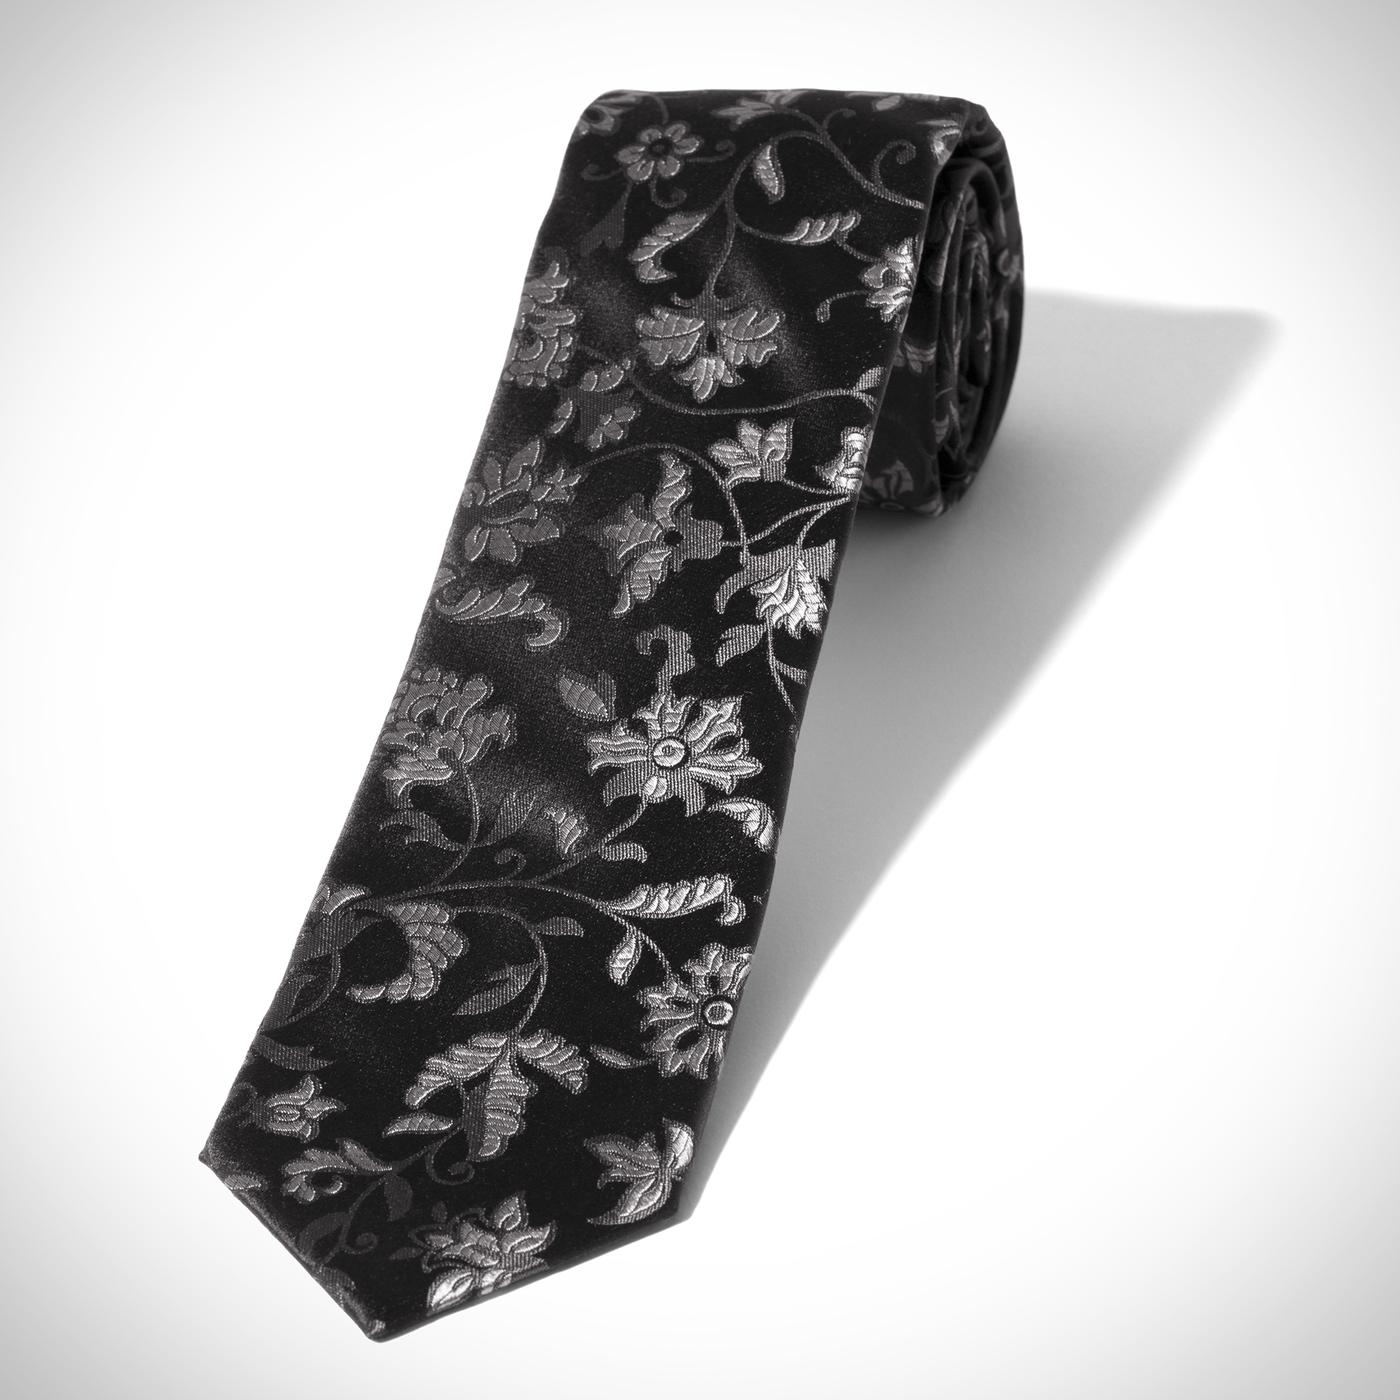 Black and Silver All Over Floral Tie